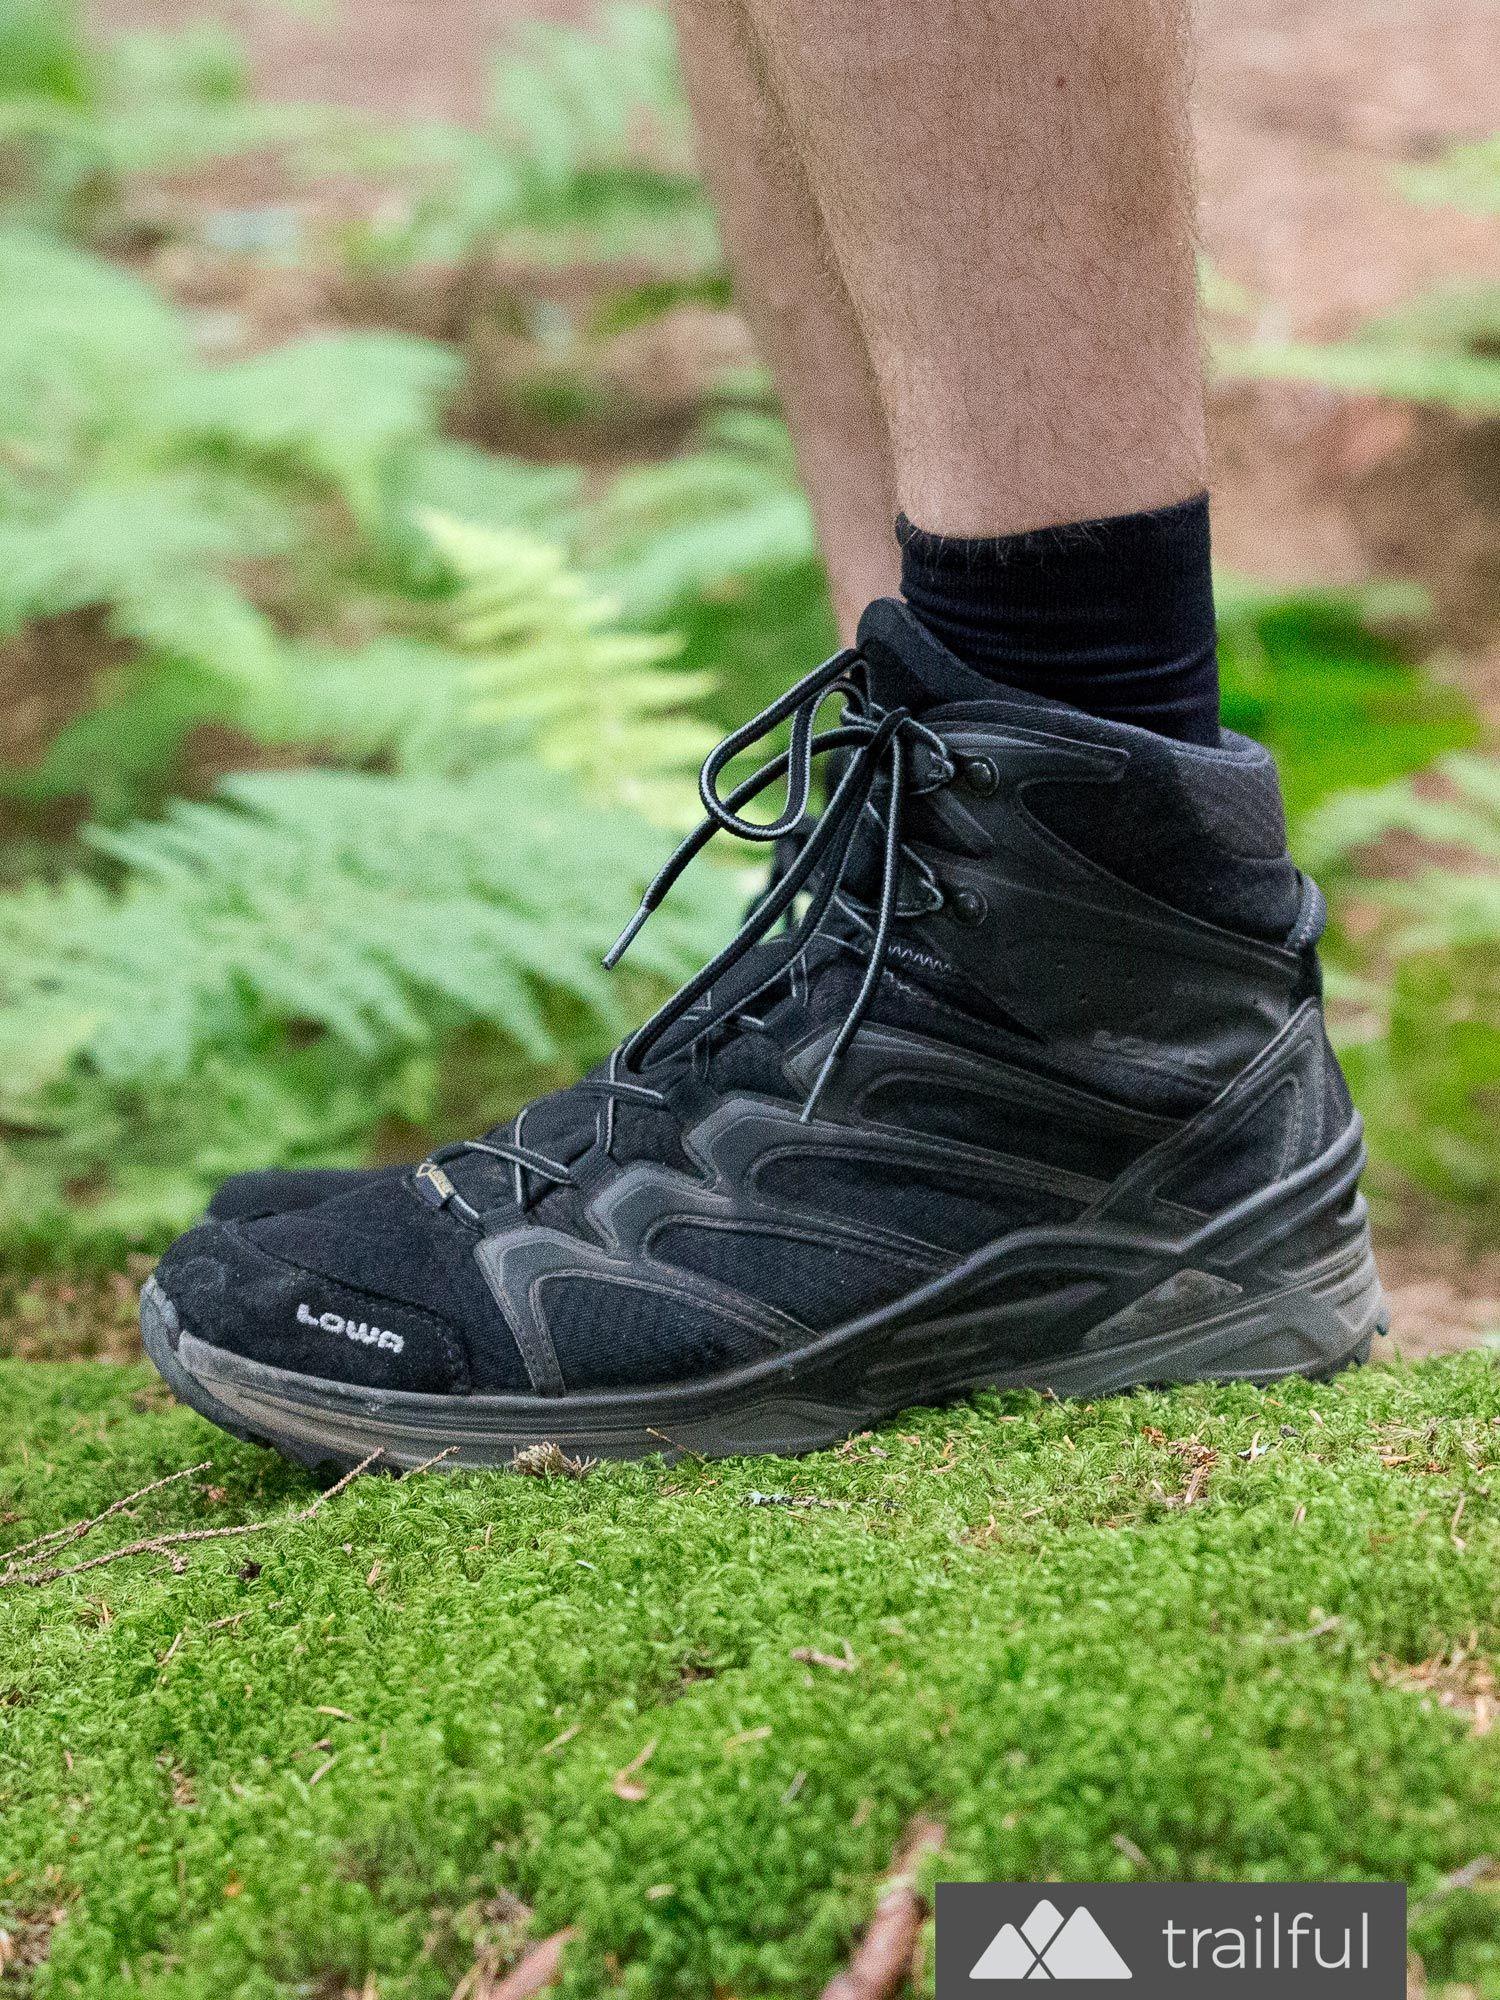 LOWA Boots Review: our favorite LOWA GTX hiking boots